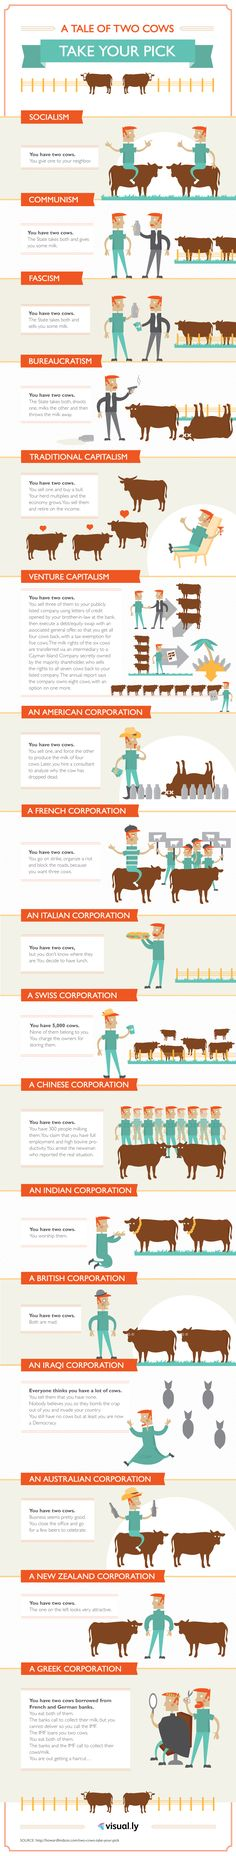 A Tale of Two Cows #infographic ~ Visualistan